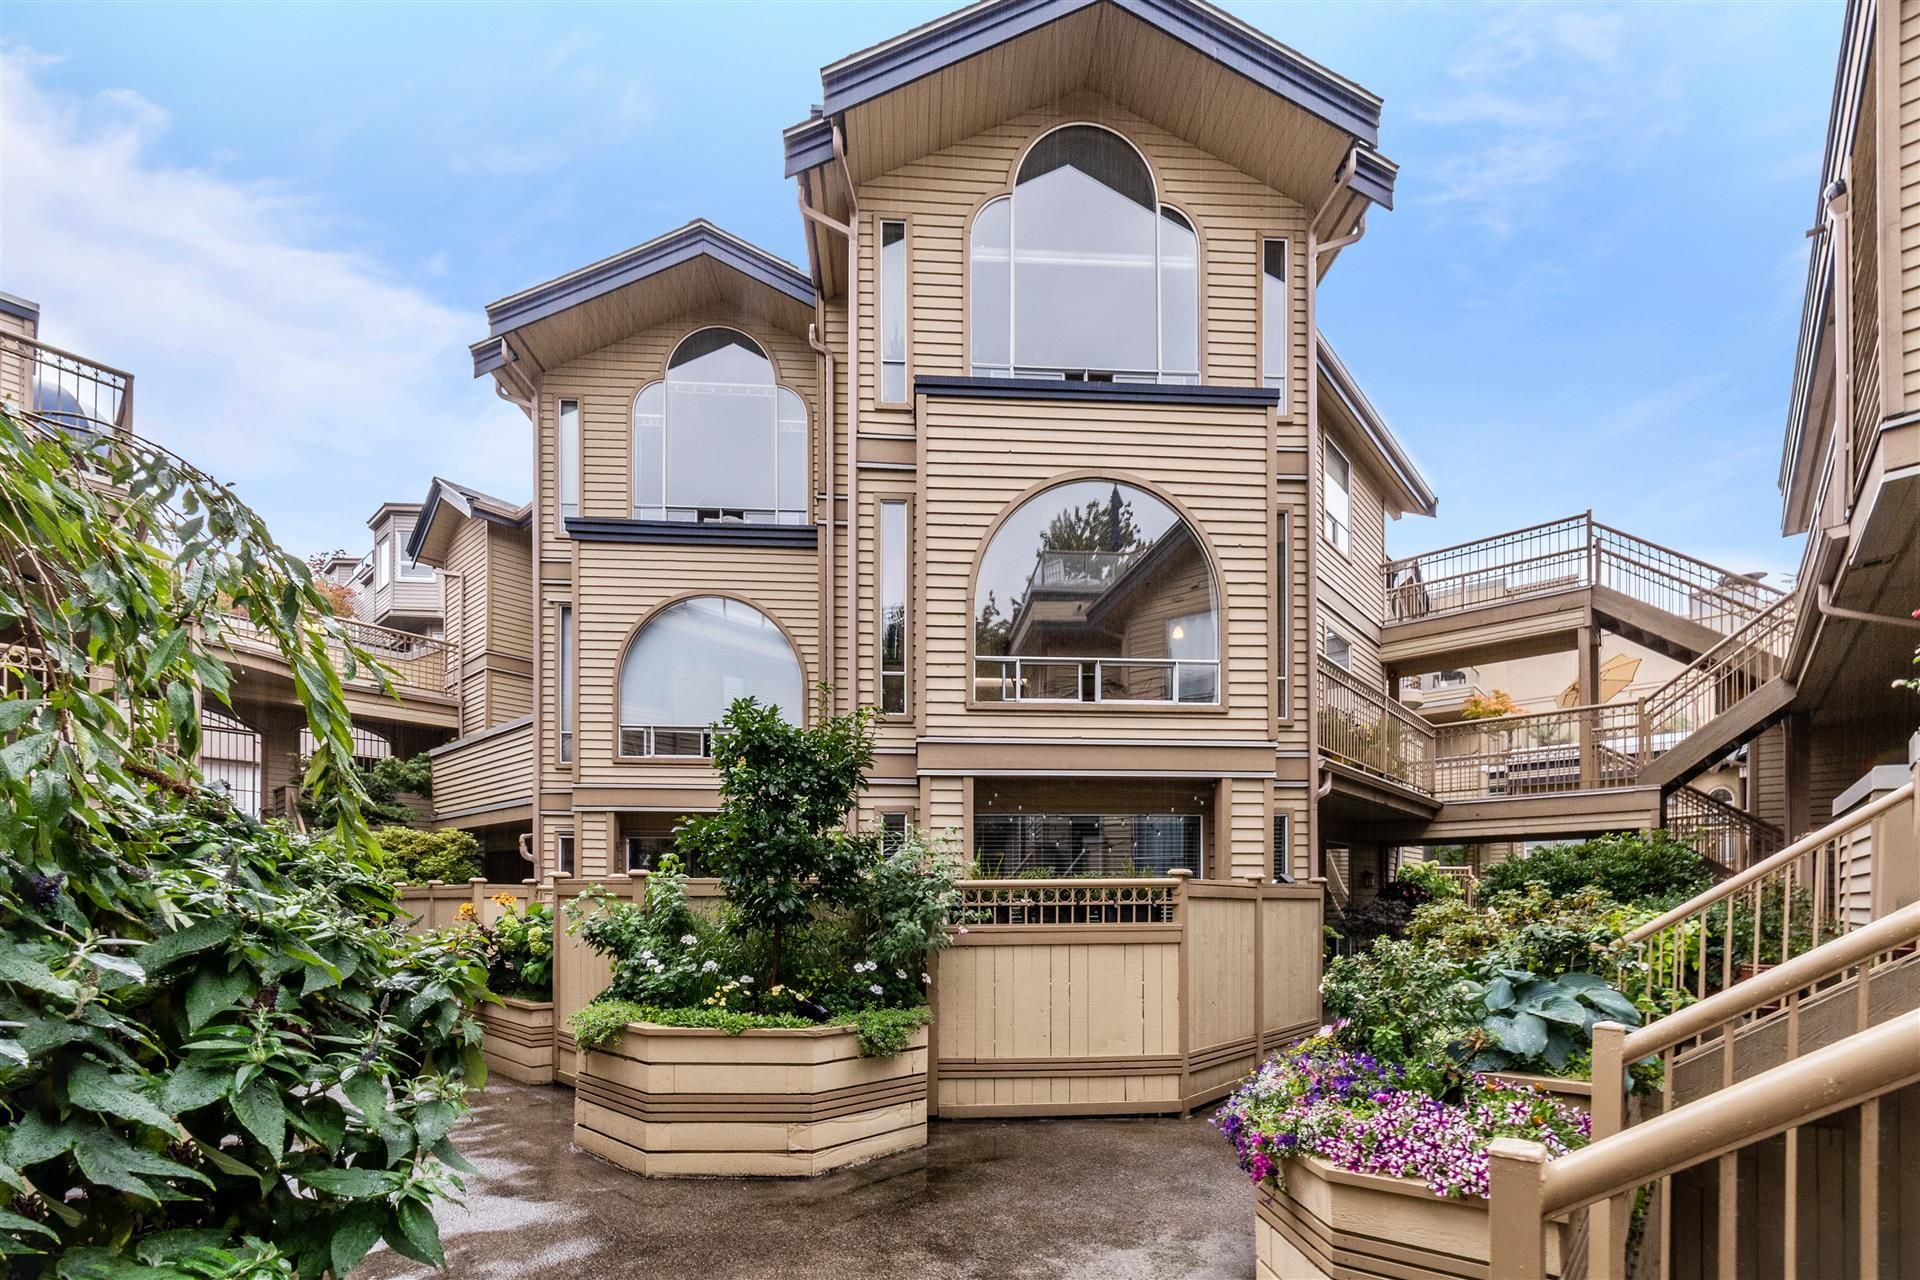 """Main Photo: 207 1100 W 7TH Avenue in Vancouver: Fairview VW Condo for sale in """"WINDGATE CHOKLIT PARK"""" (Vancouver West)  : MLS®# R2615620"""